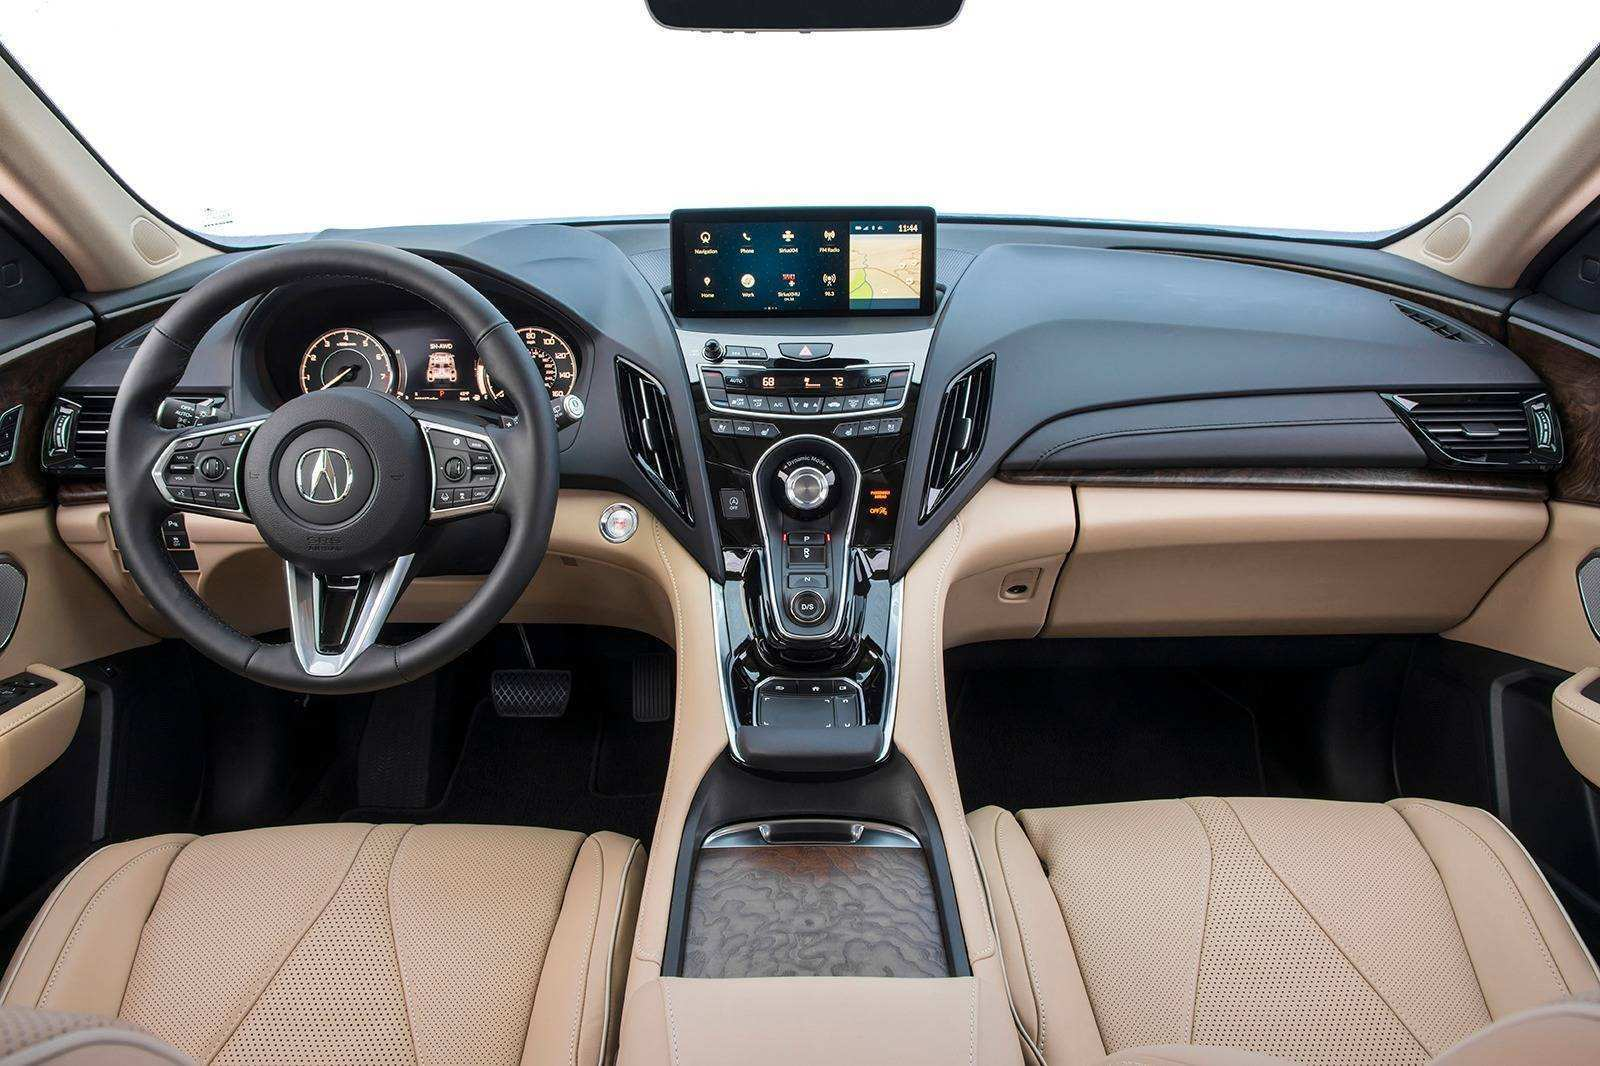 48 The New Acura Rdx 2019 Option Packages Review And Specs Style with New Acura Rdx 2019 Option Packages Review And Specs